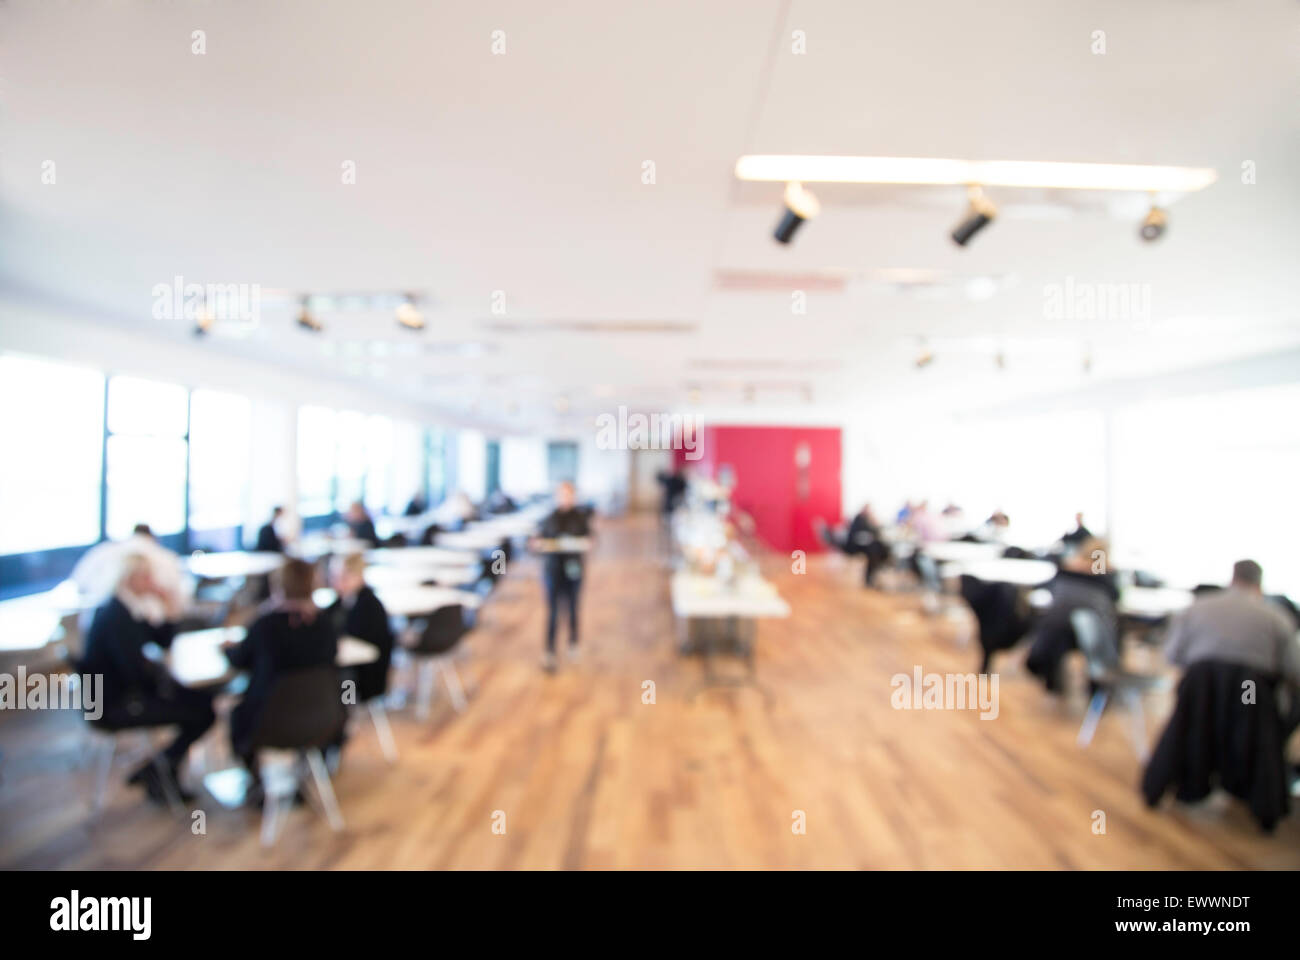 out of focus shot of an office cafeteria, people serving themselves at the counter with table in the foreground, - Stock Image